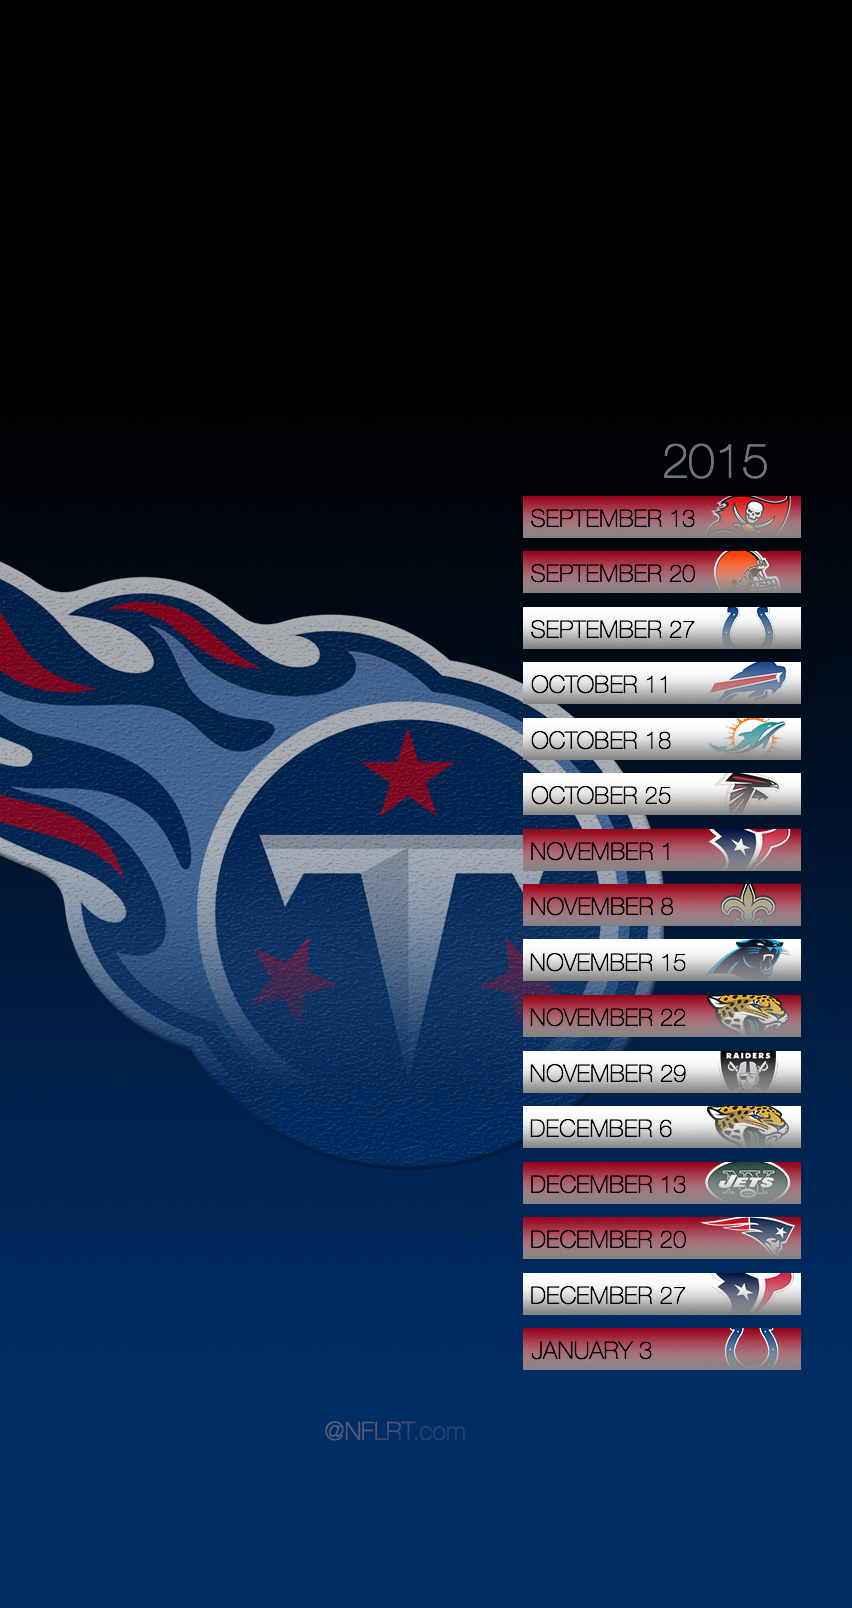 2015 NFL Schedule Wallpapers   Page 5 of 8   NFLRT 852x1608